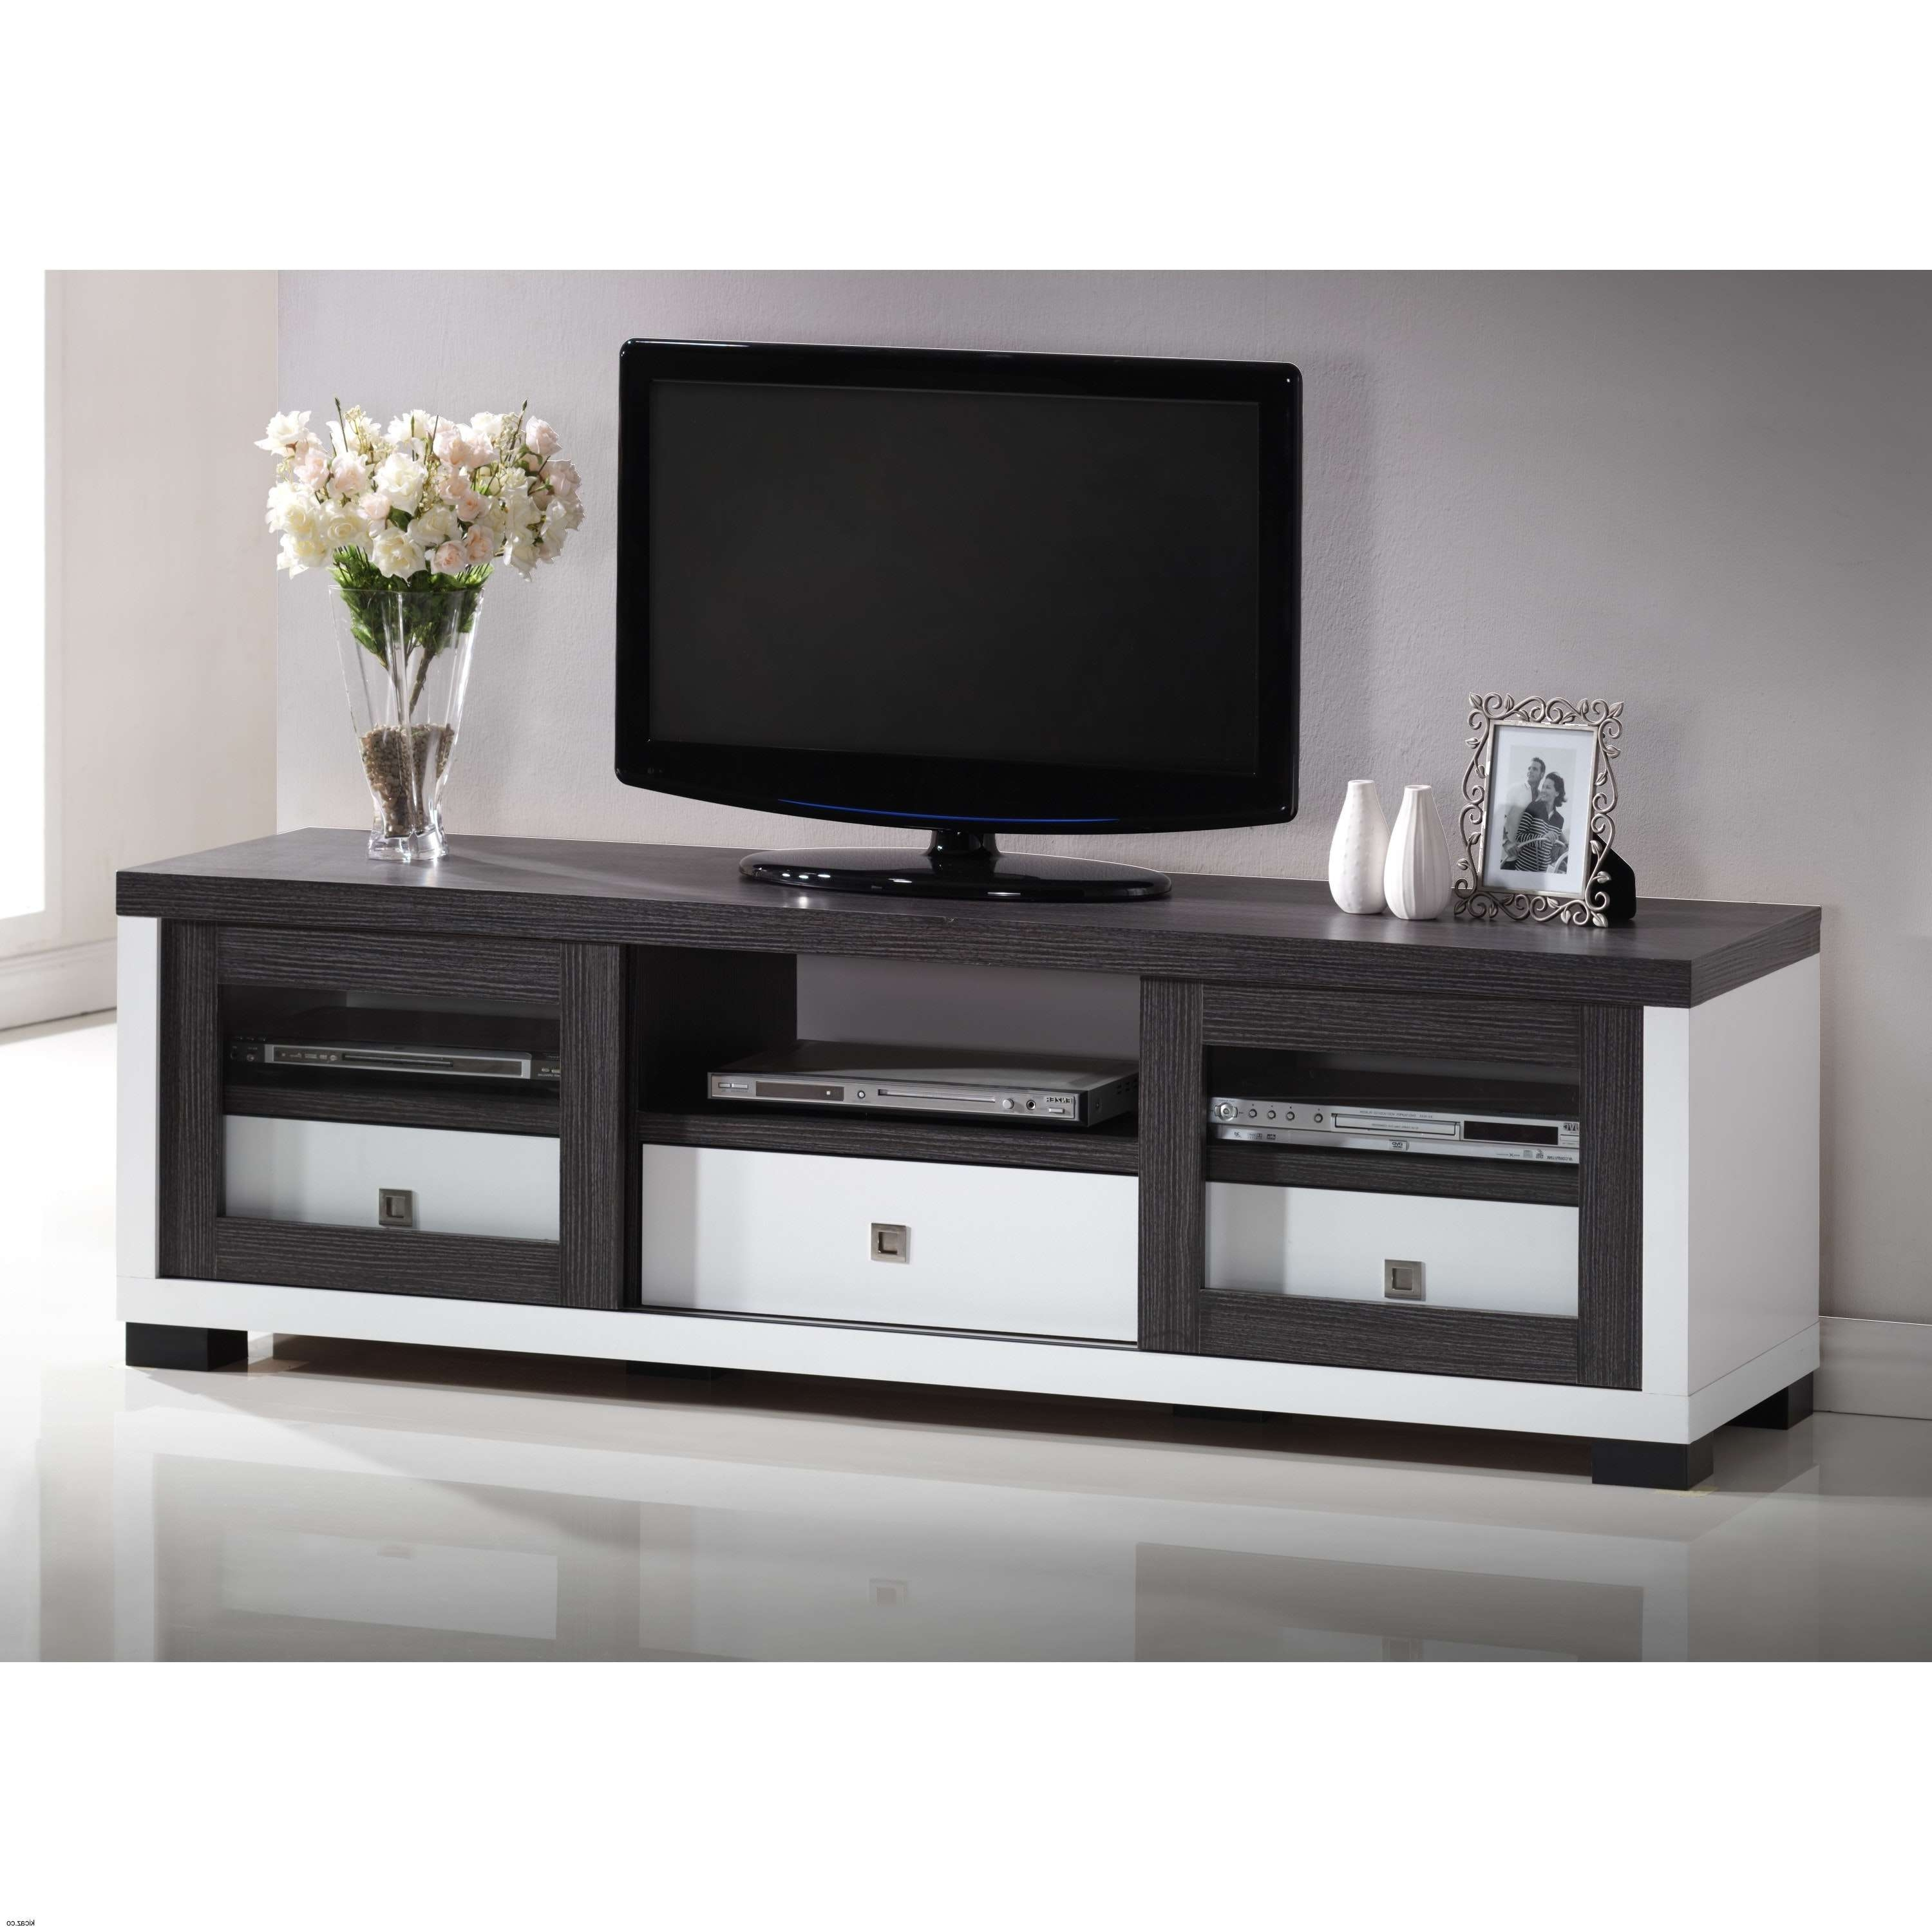 Short Tv Stands Home Design White Stand Entertainment Center | Kicaz Intended For Long White Tv Stands (View 13 of 15)